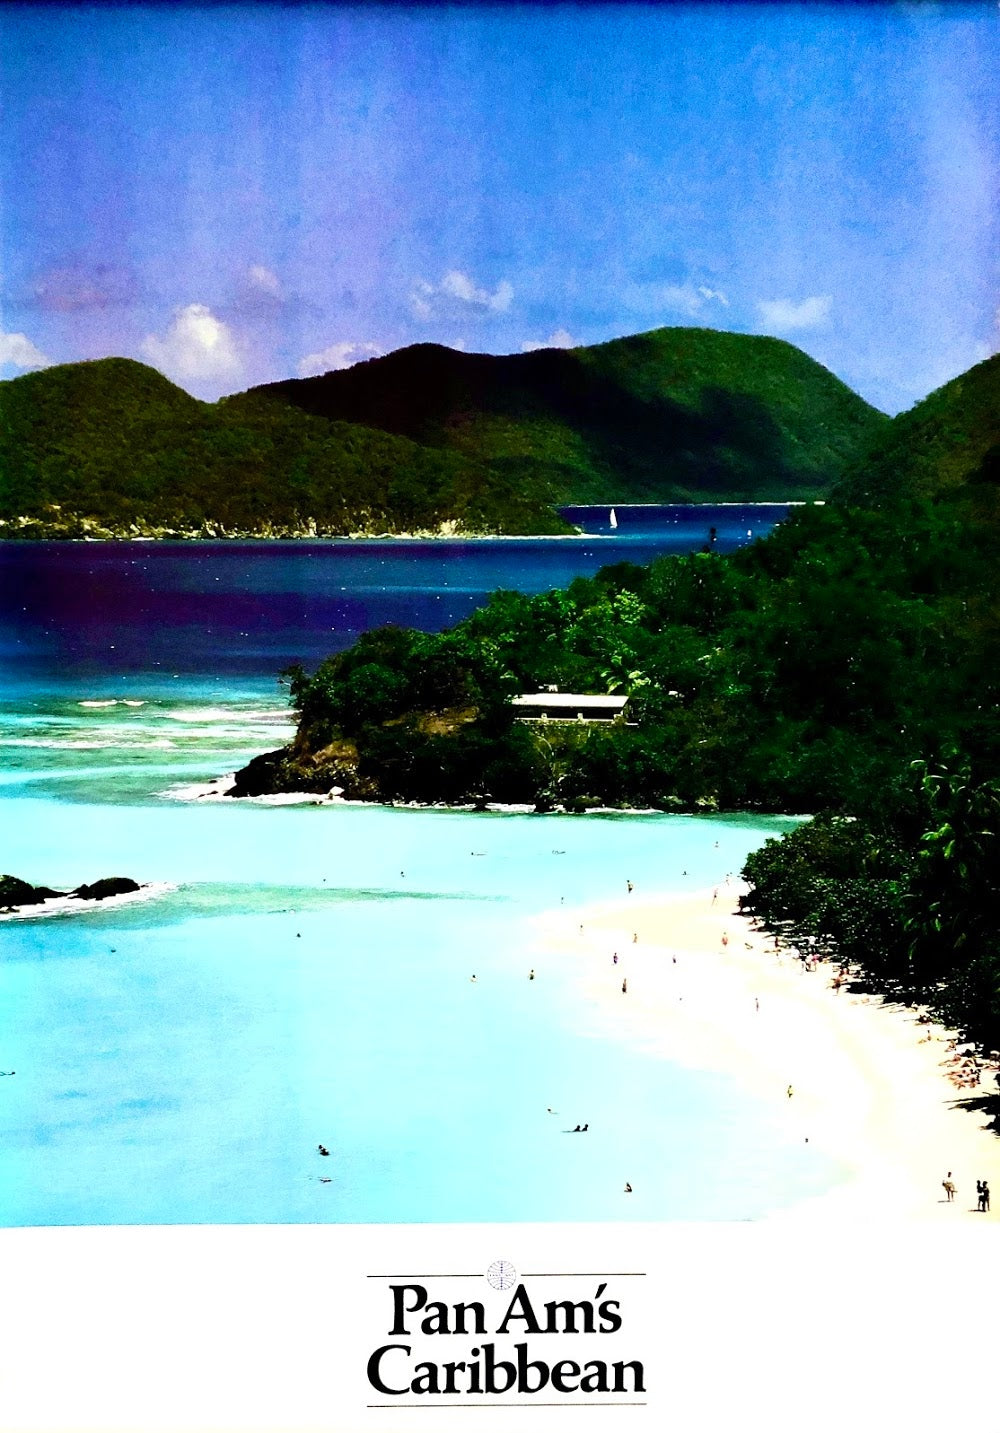 Vintage Pan Am's Caribbean Poster